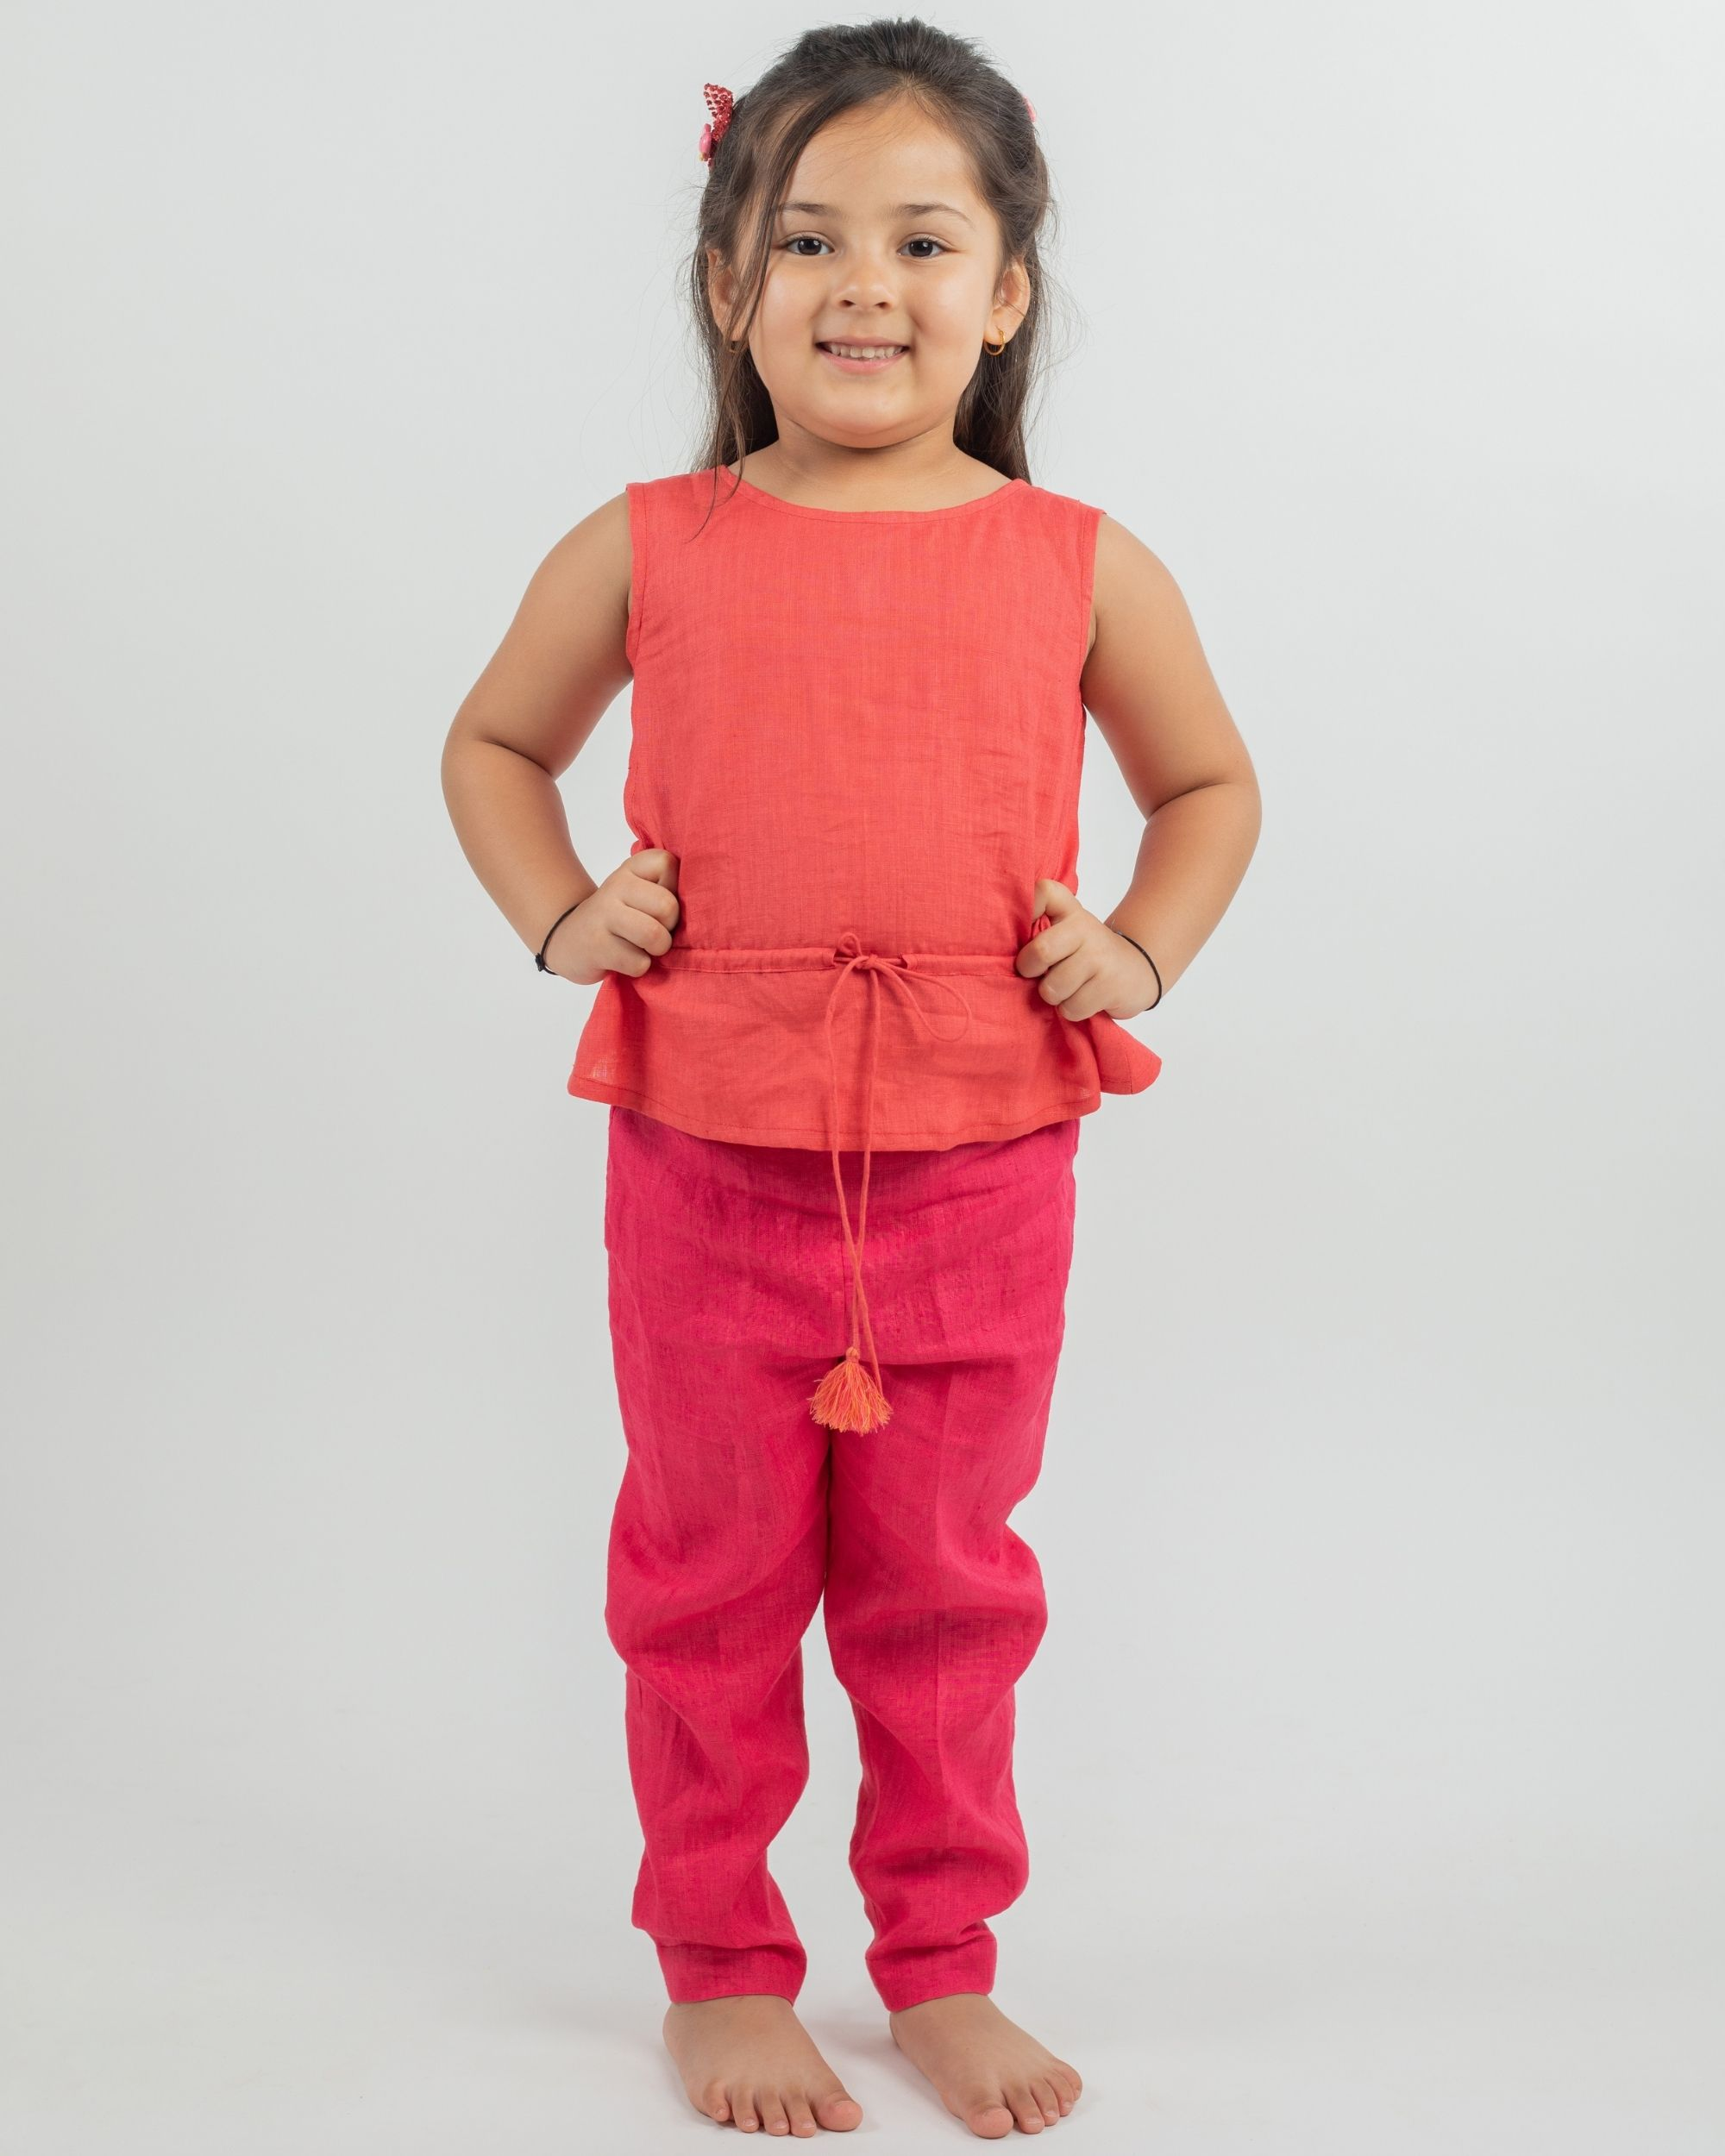 Linen rust top and pink pants - set of two